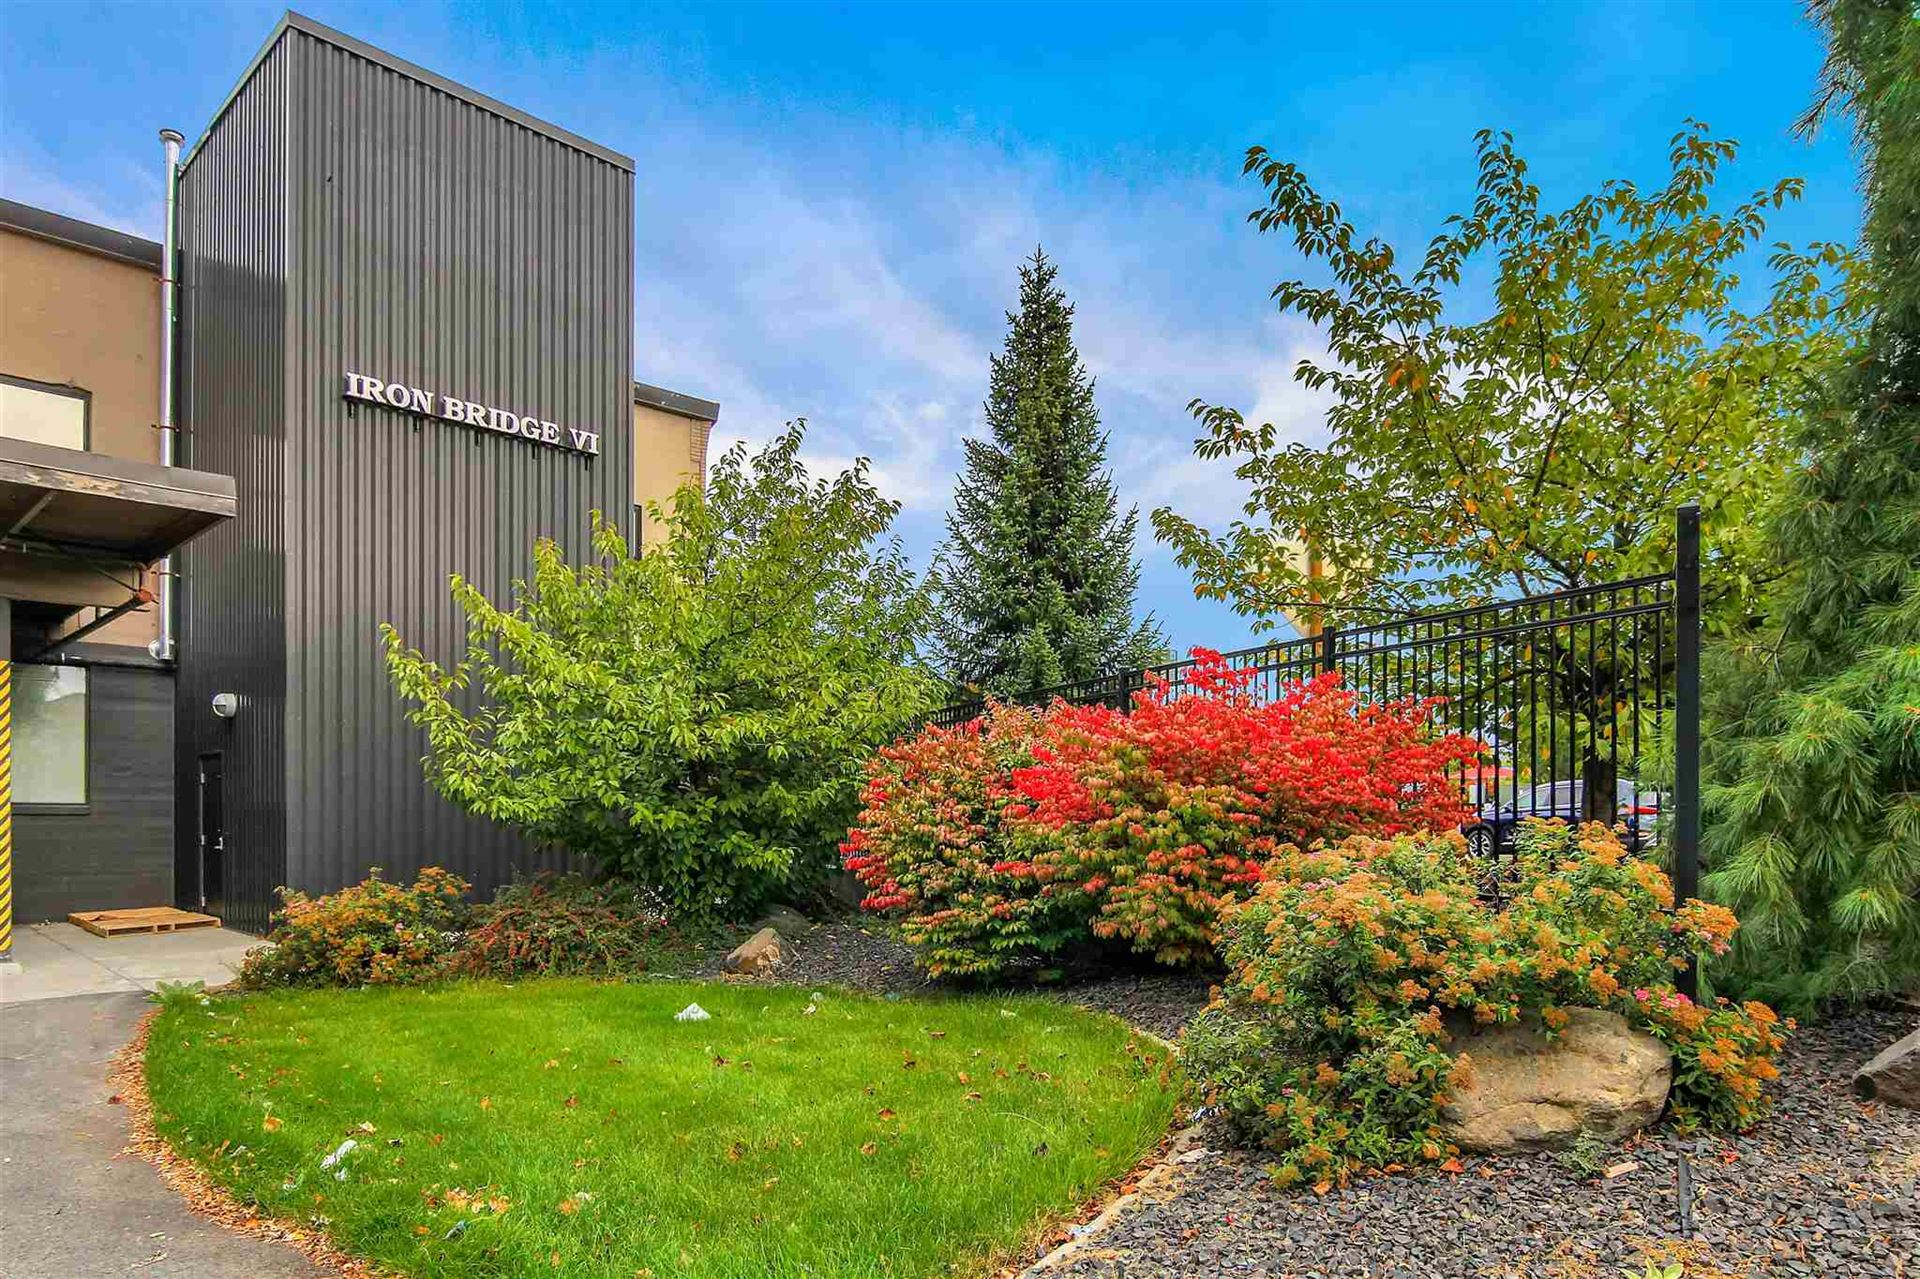 629 N Iron Ct #113, Spokane, WA 99202 - #: 202111206